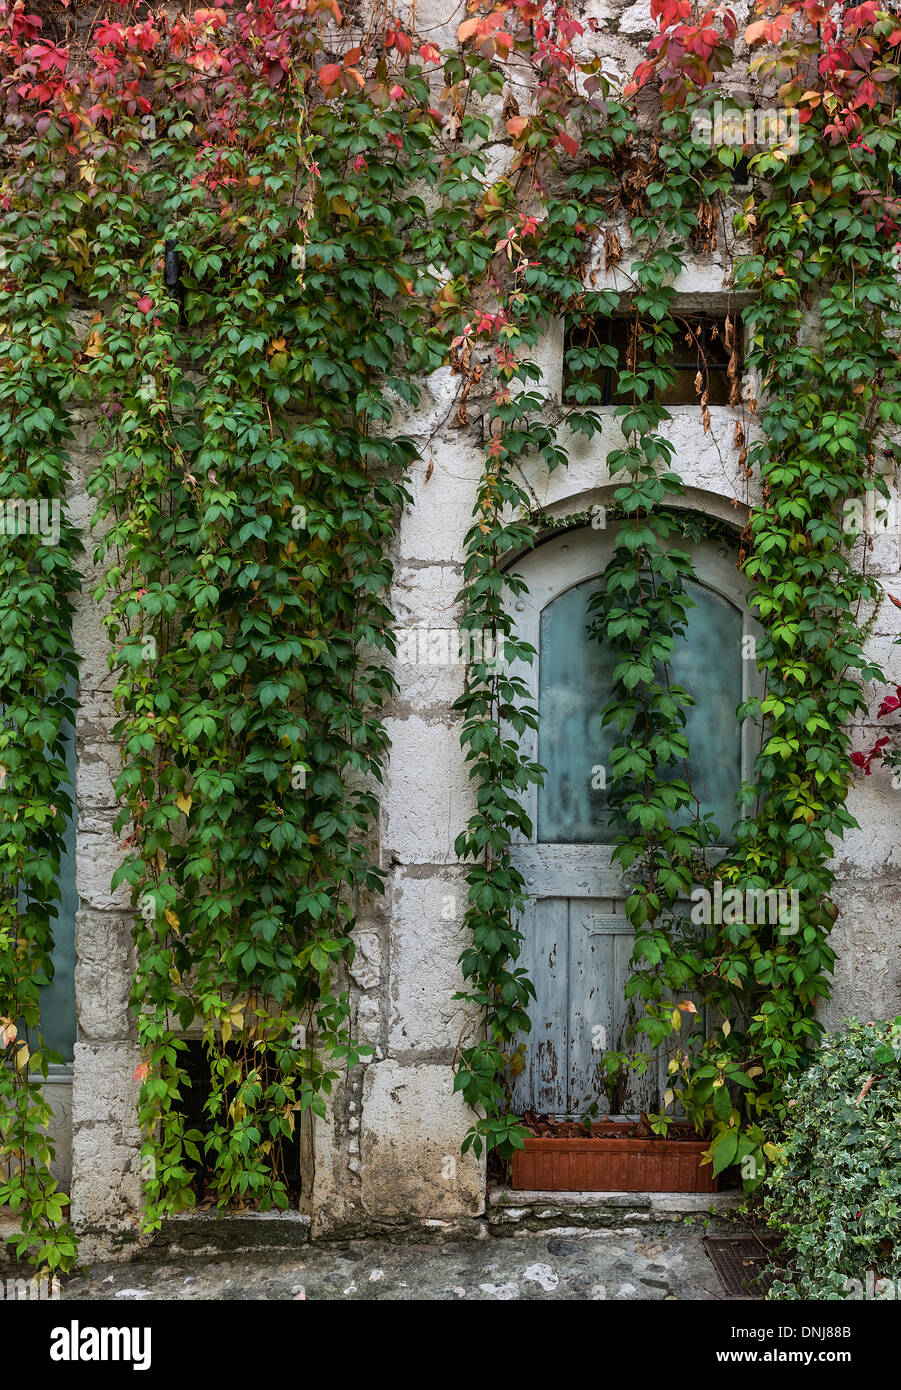 Old building facade draped with dense ivy, St Paul de Vence, Provence, France - Stock Image